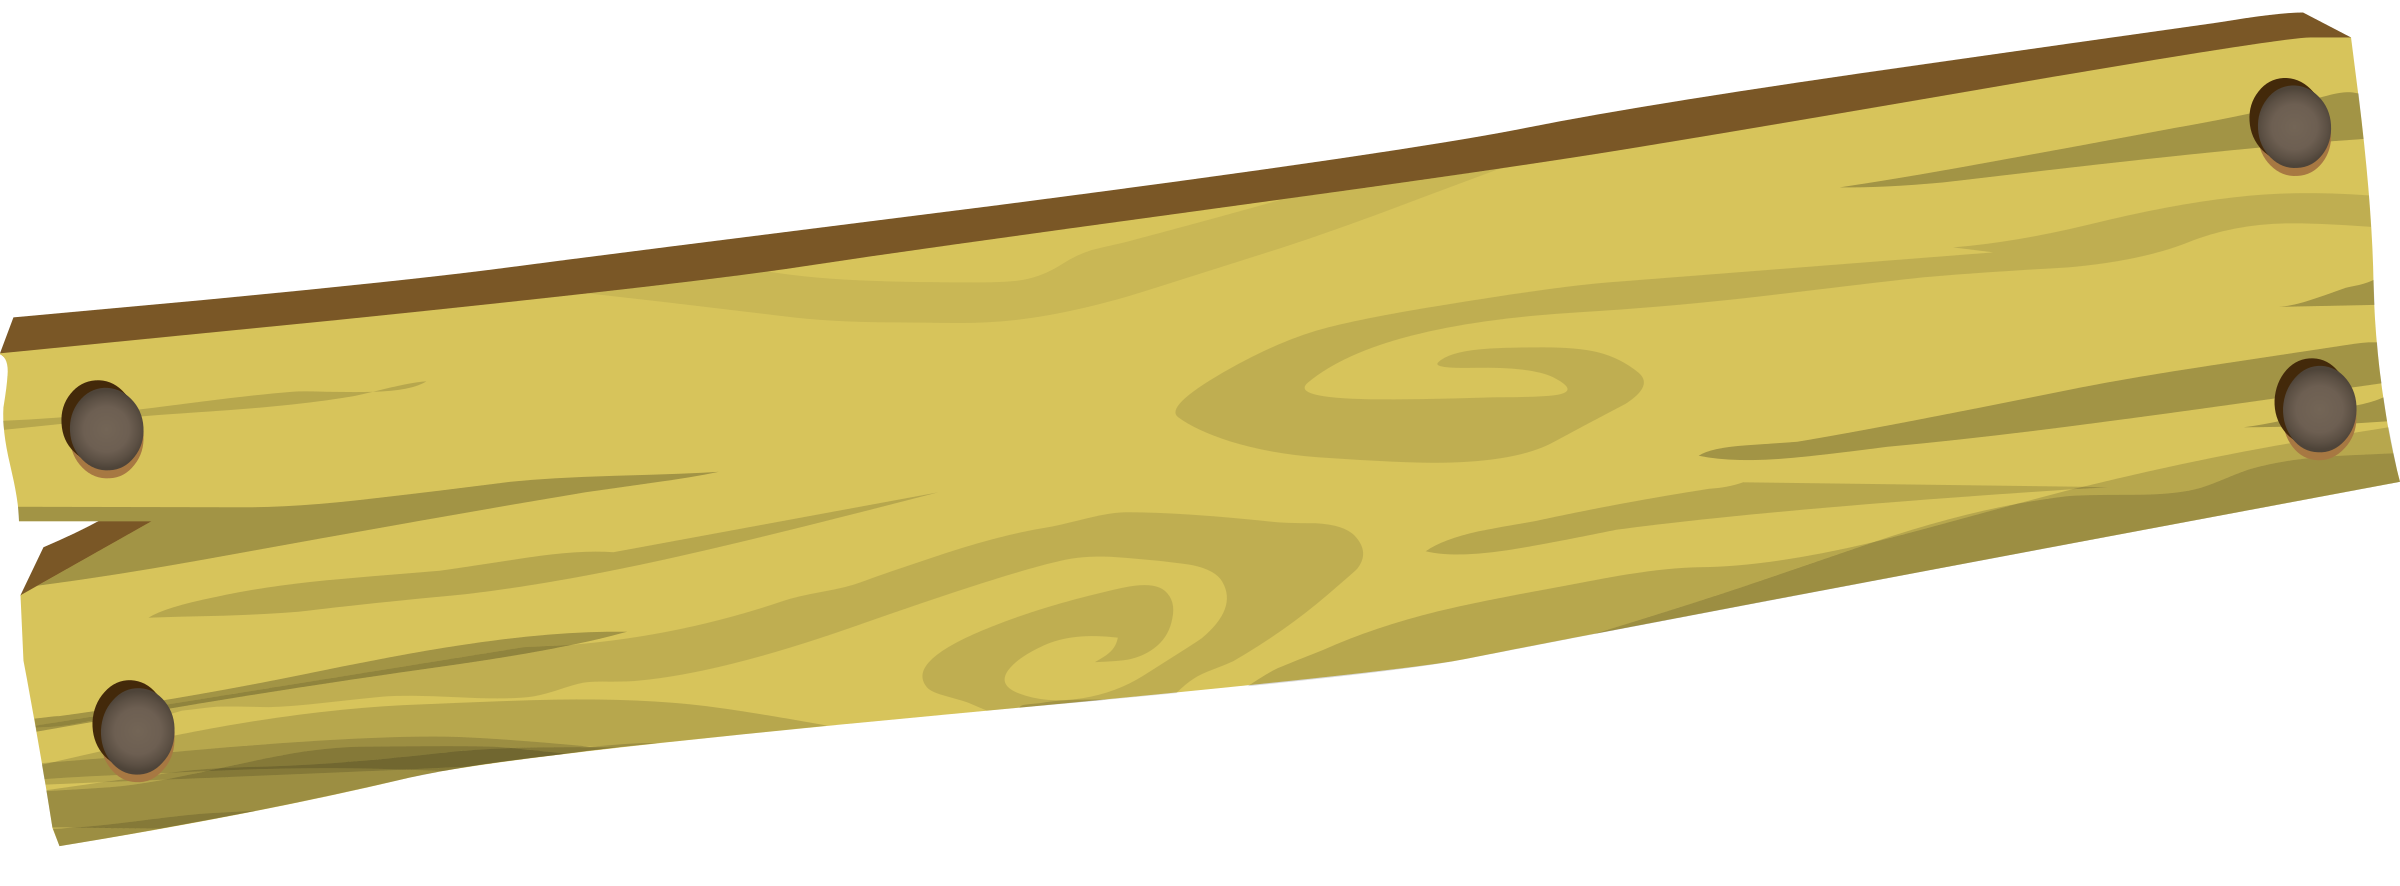 Bark drawing wood plank. Clipart slab cute borders